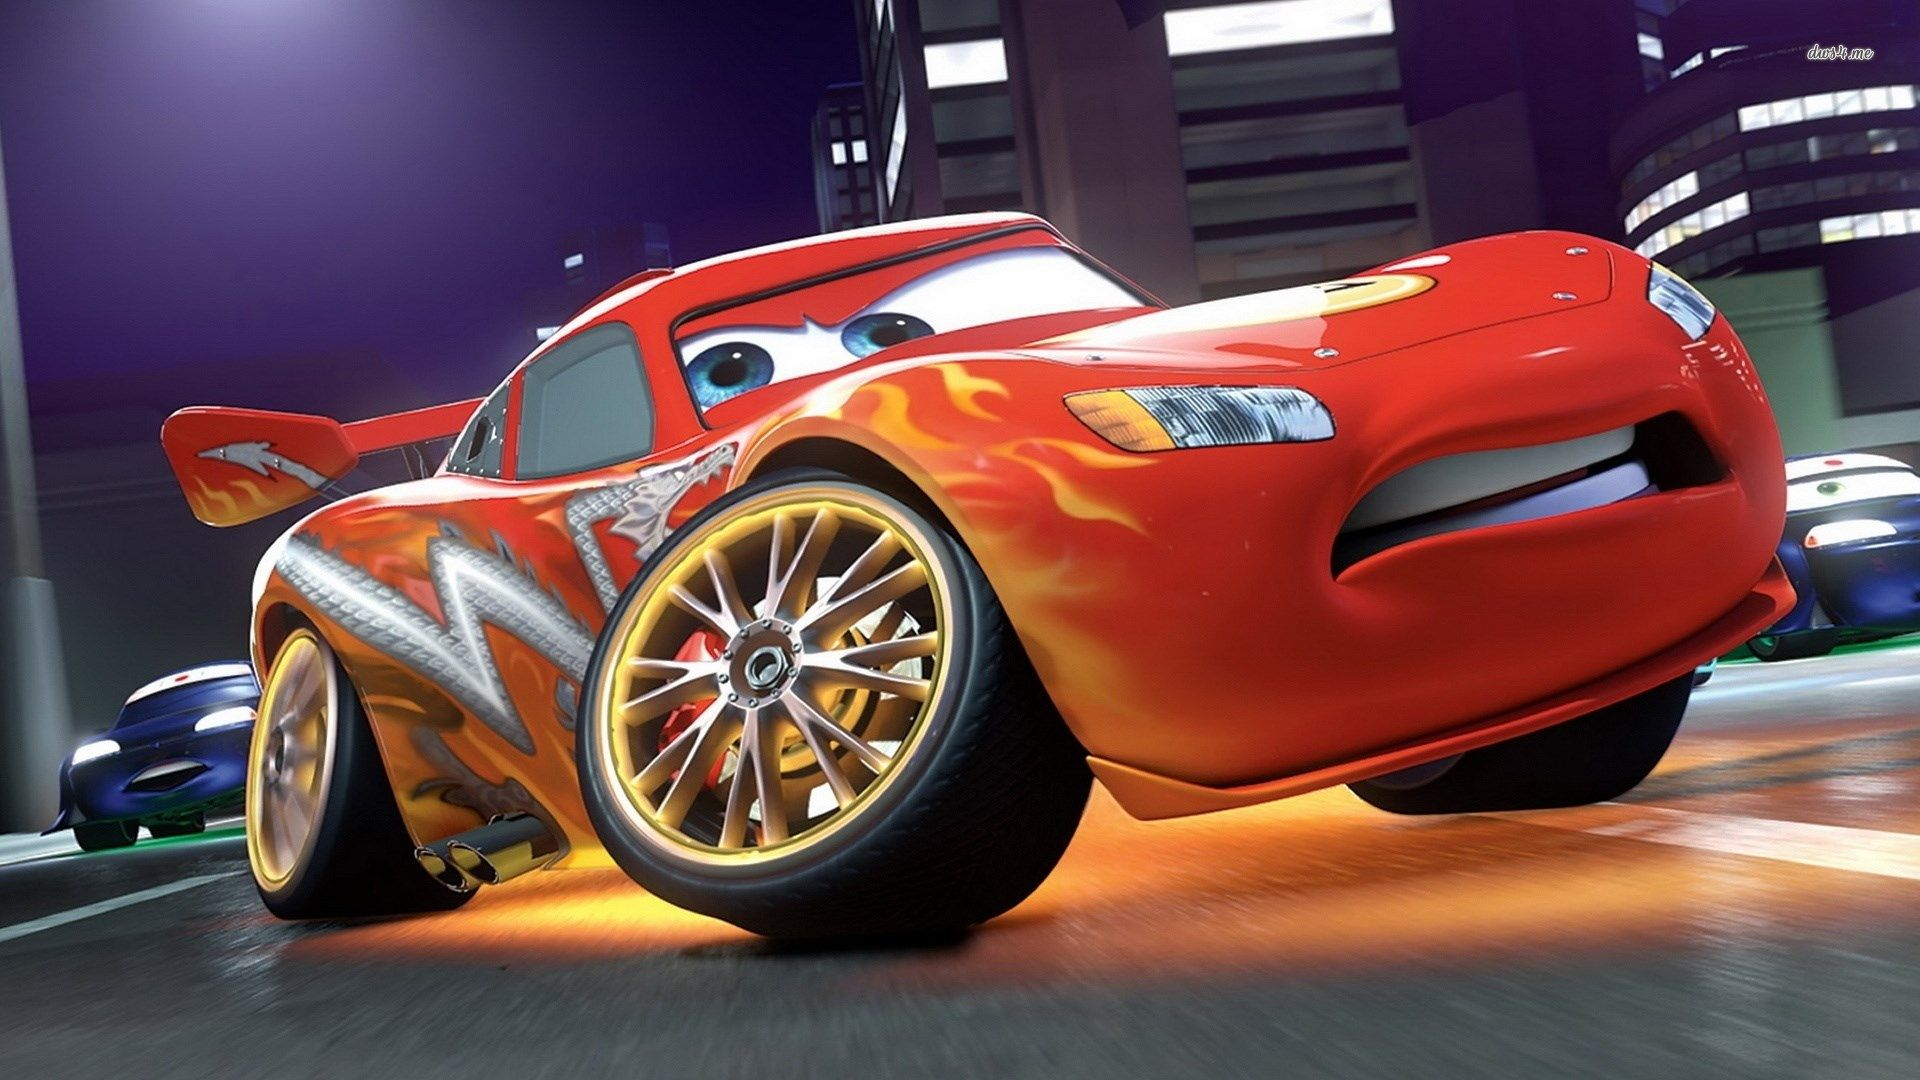 Cars 2 Background Hd Beowulf Peacock 1920x1080 Carros De Peliculas Disney Cars Peliculas Infantiles